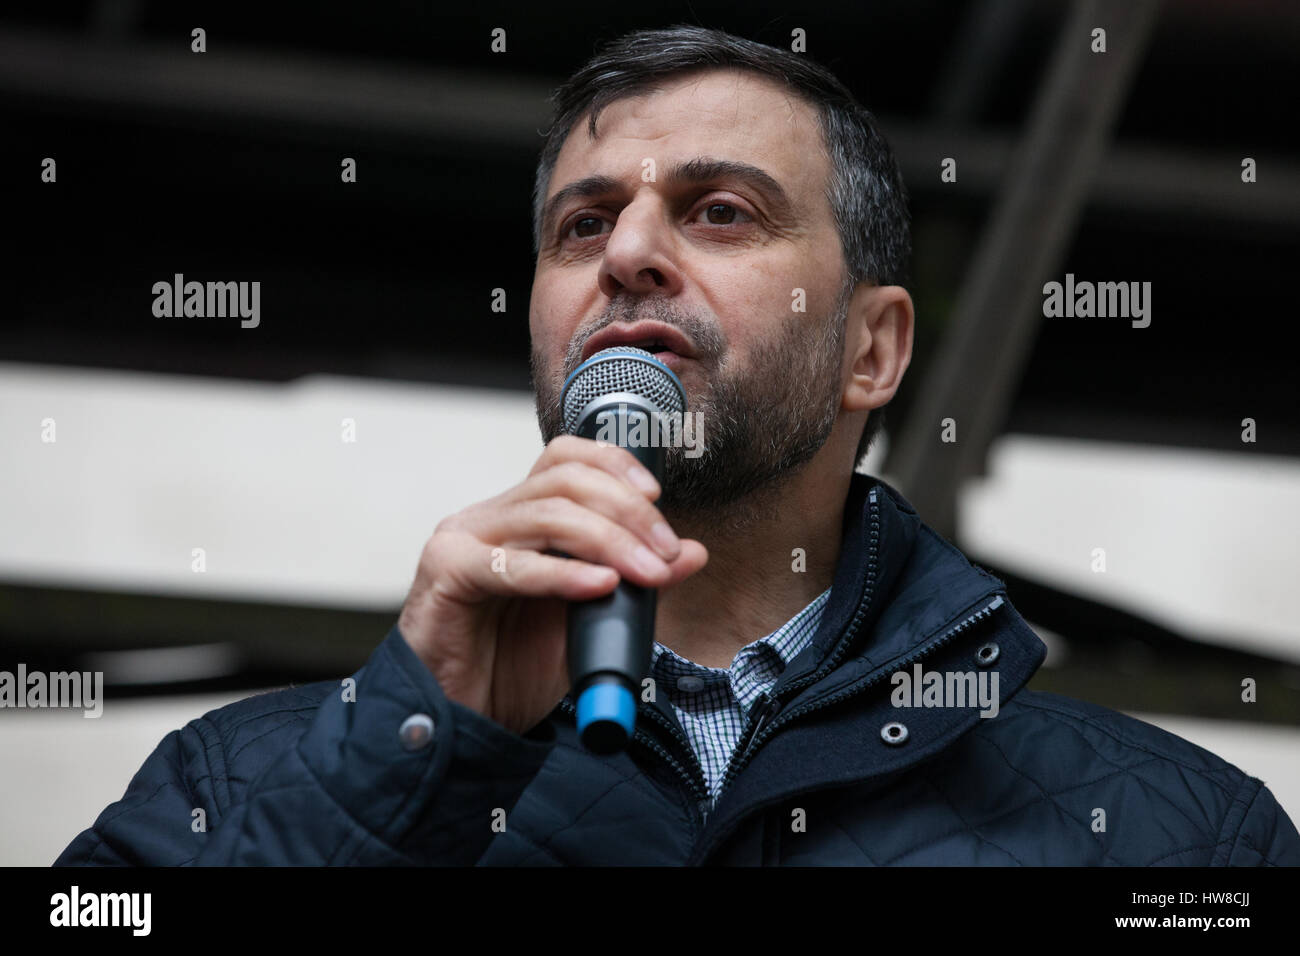 London, UK. 18th March, 2017. Mohammed Kozbar, Vice-President of the Muslim Association of Britain, addresses thousands - Stock Image